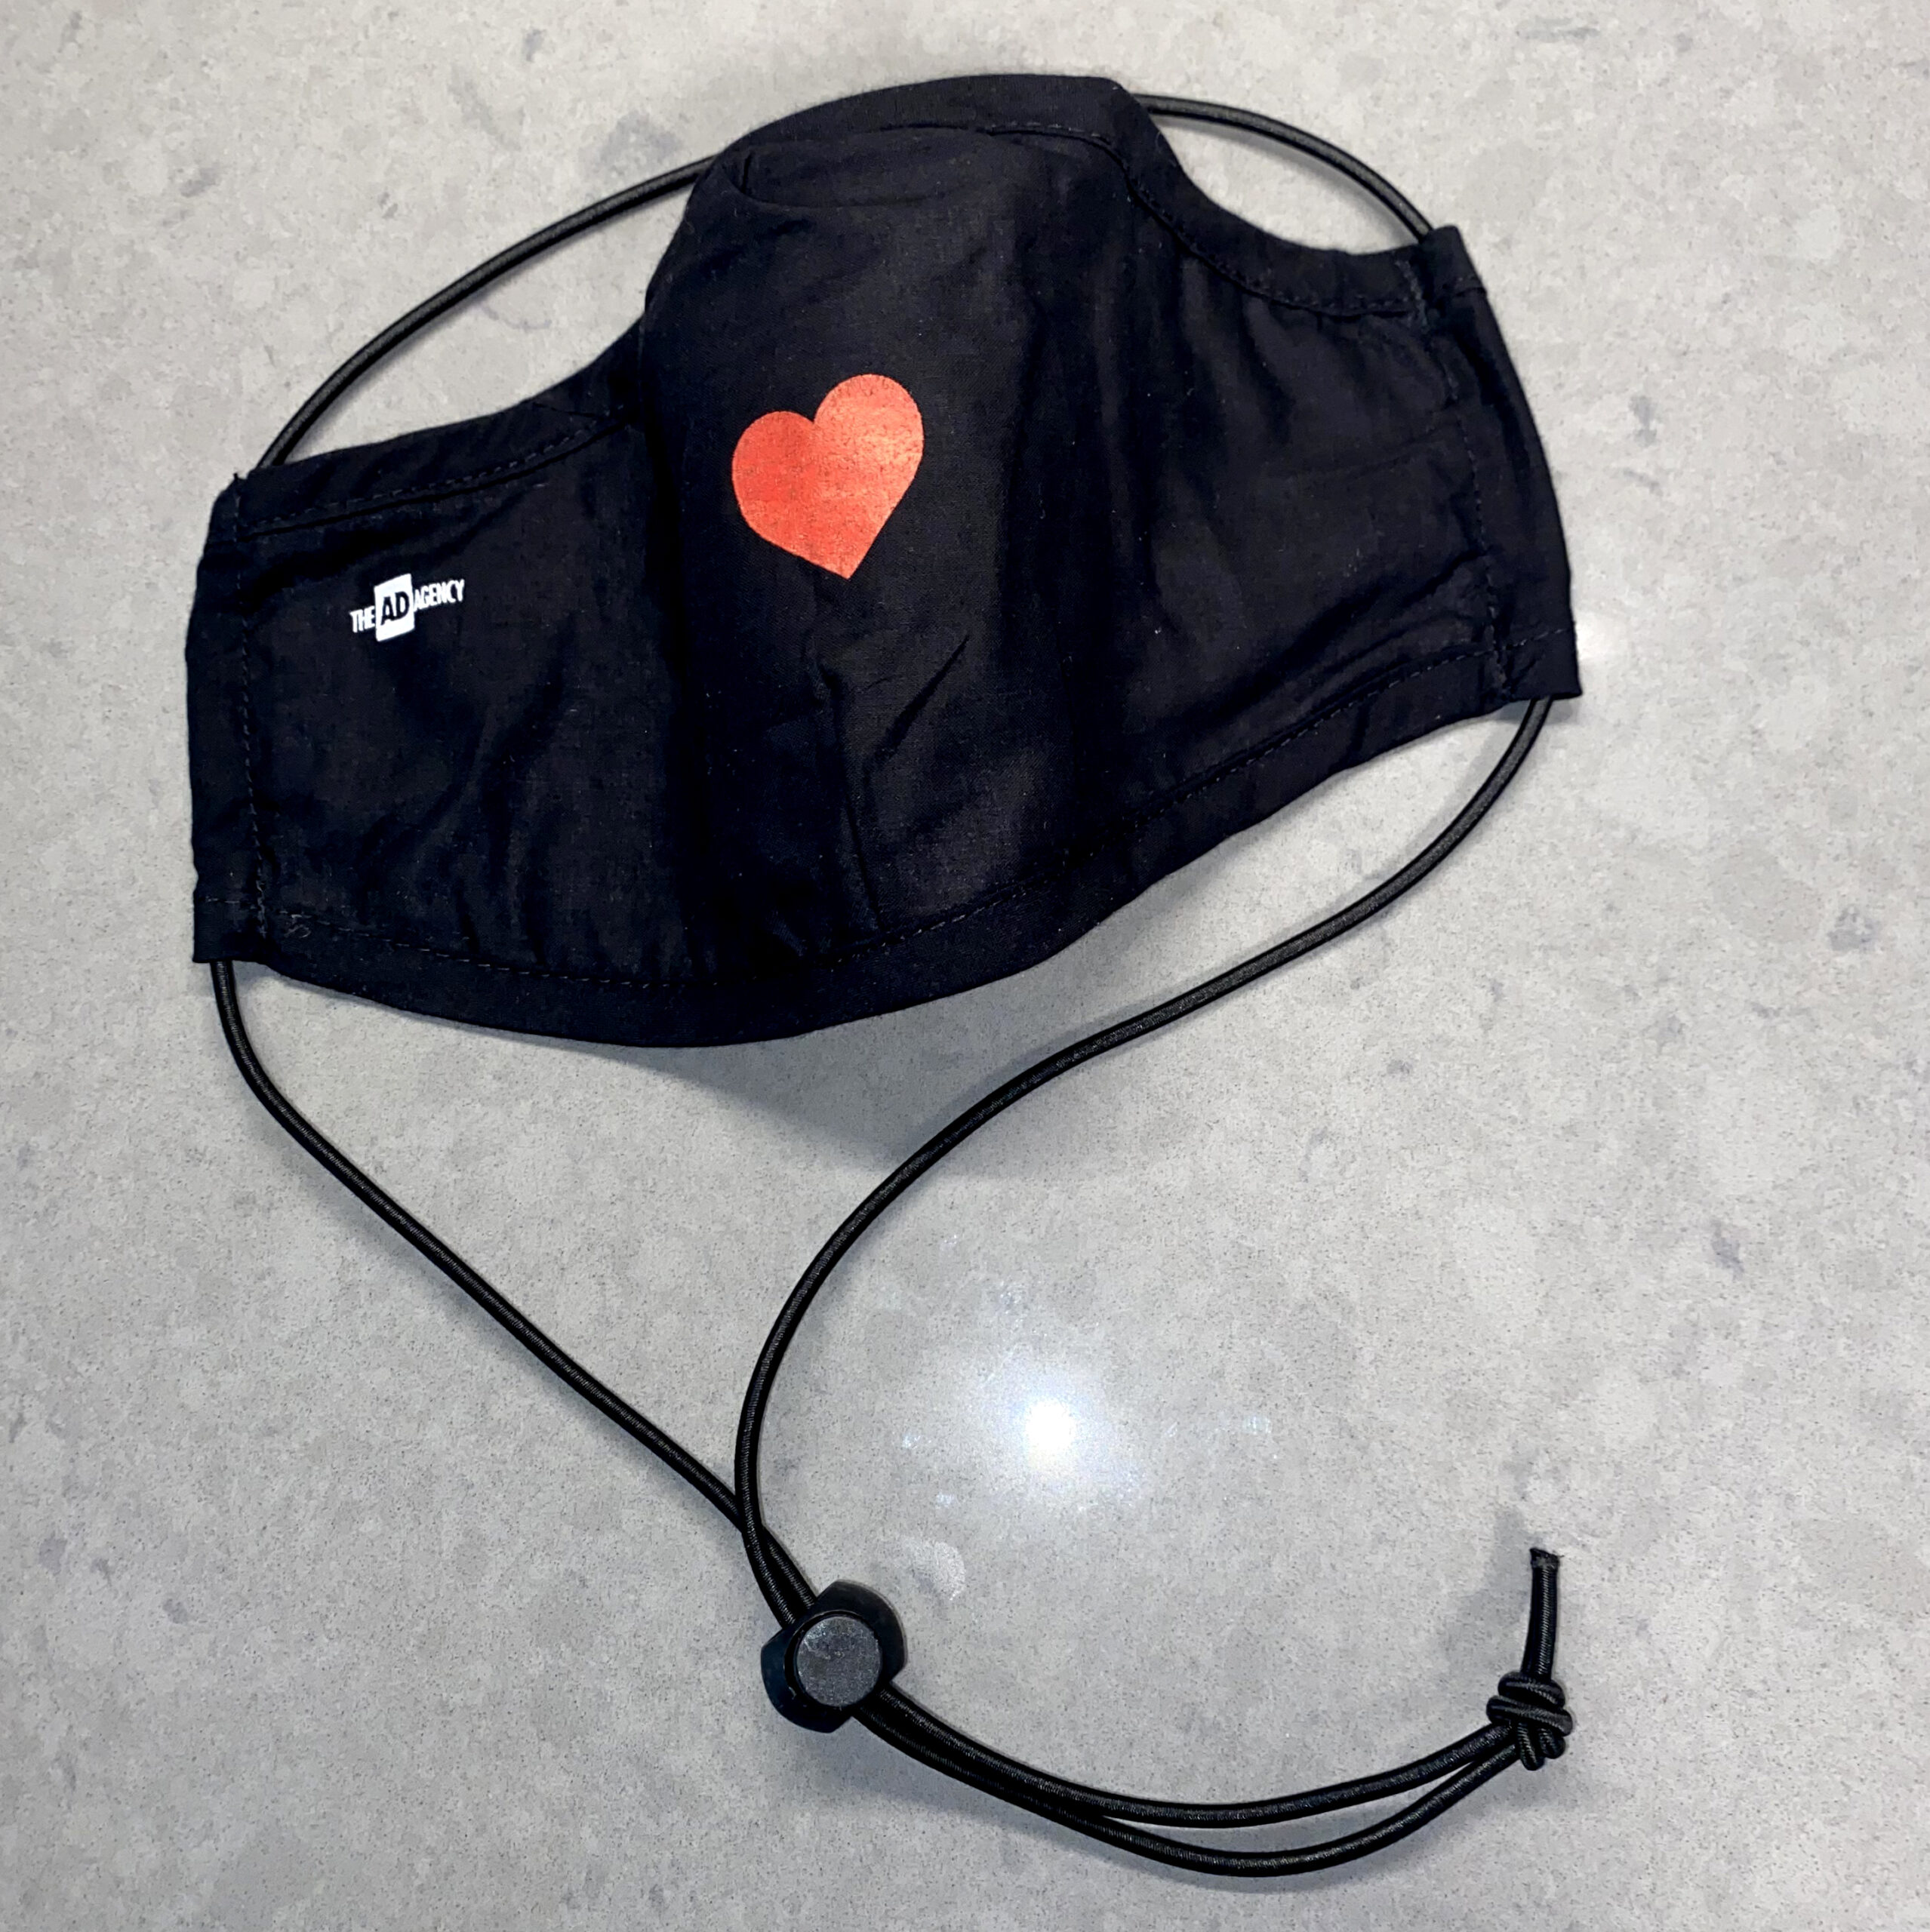 The AD Agency new stylish Heart Mask